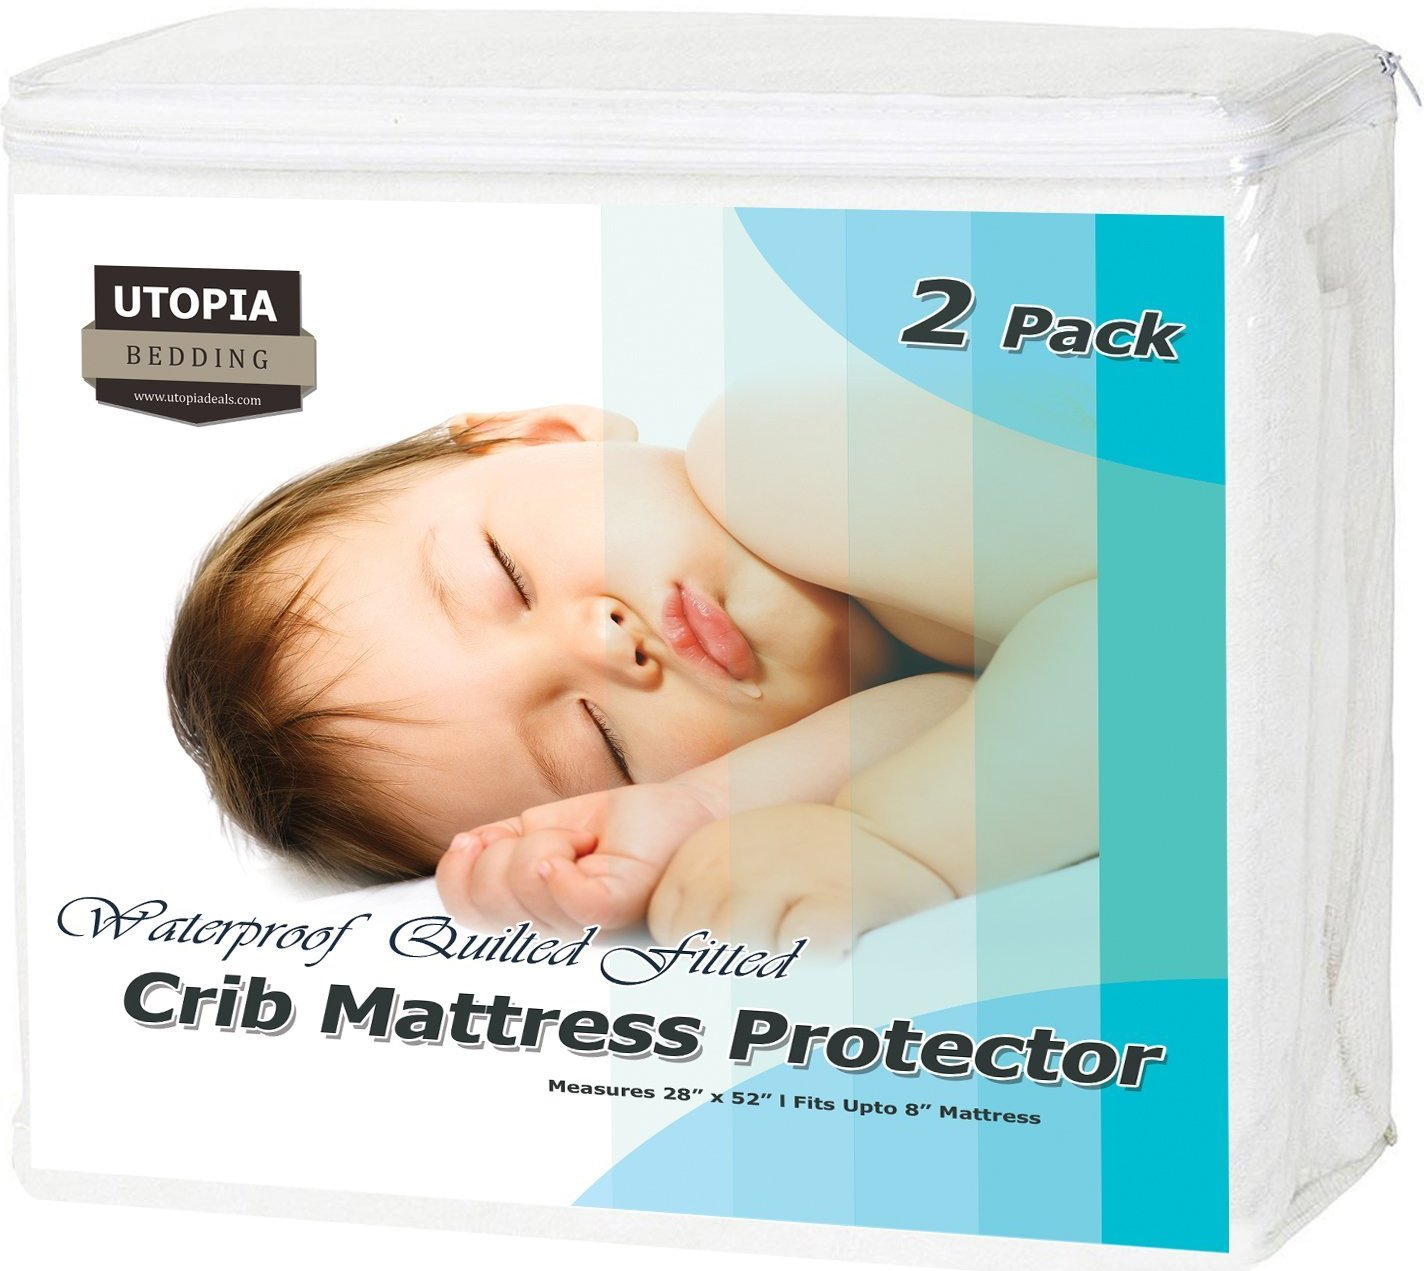 Utopia Bedding Waterproof Crib Mattress Protector - Hypoallergenic Quilted Crib Fitted - Cradle Mattress Pad